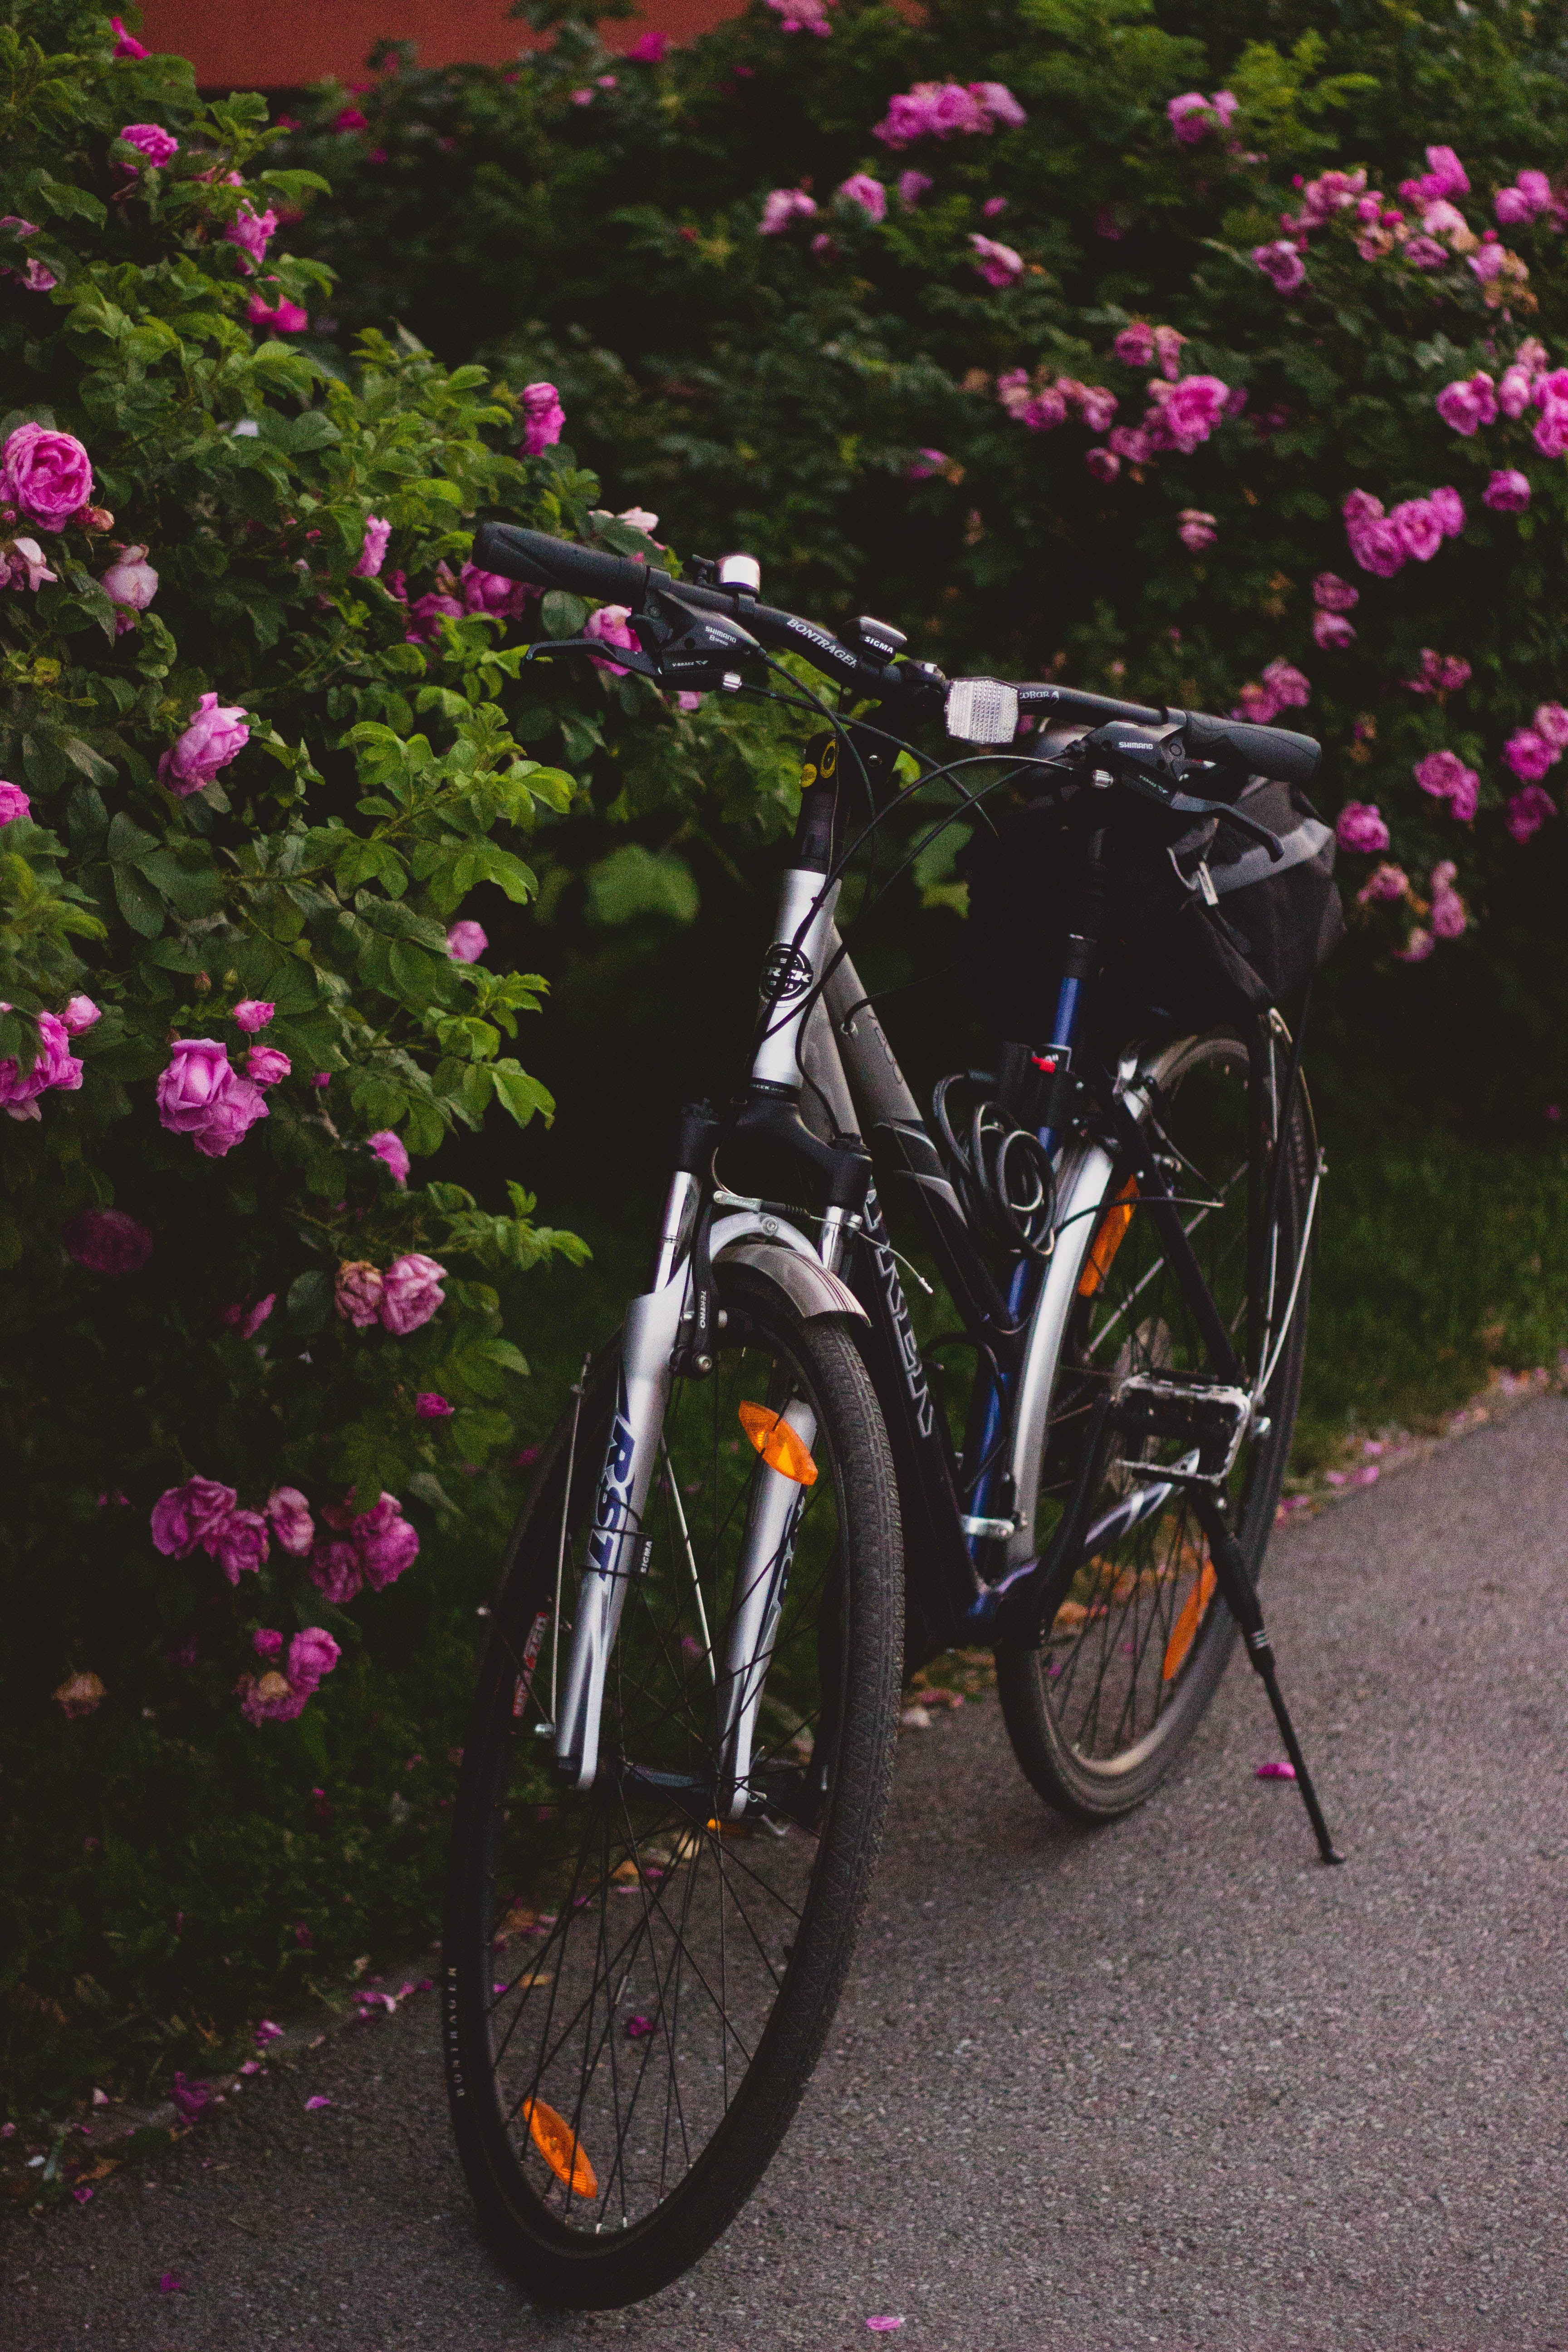 Gray and Black Hardtail Bike Beside Pink Flowers